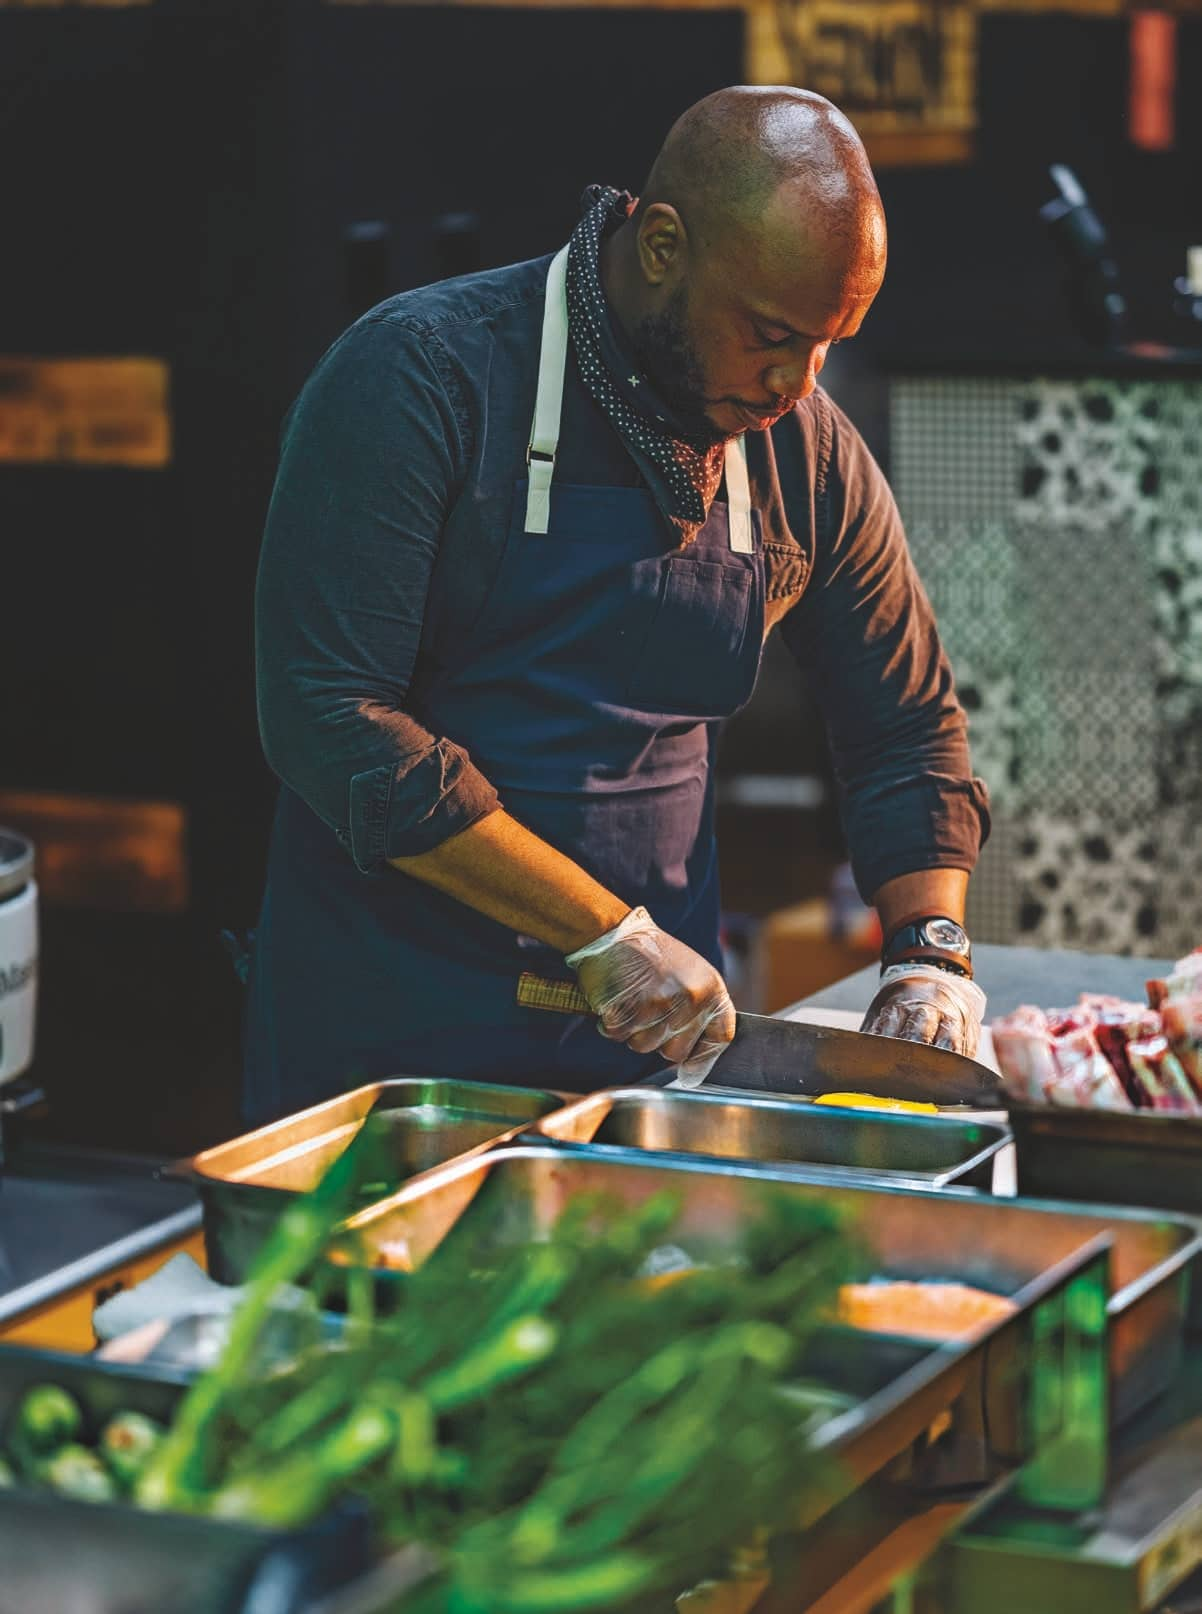 CHEF, INTERRUPTED: Rawlston Williams Grows His Congregation